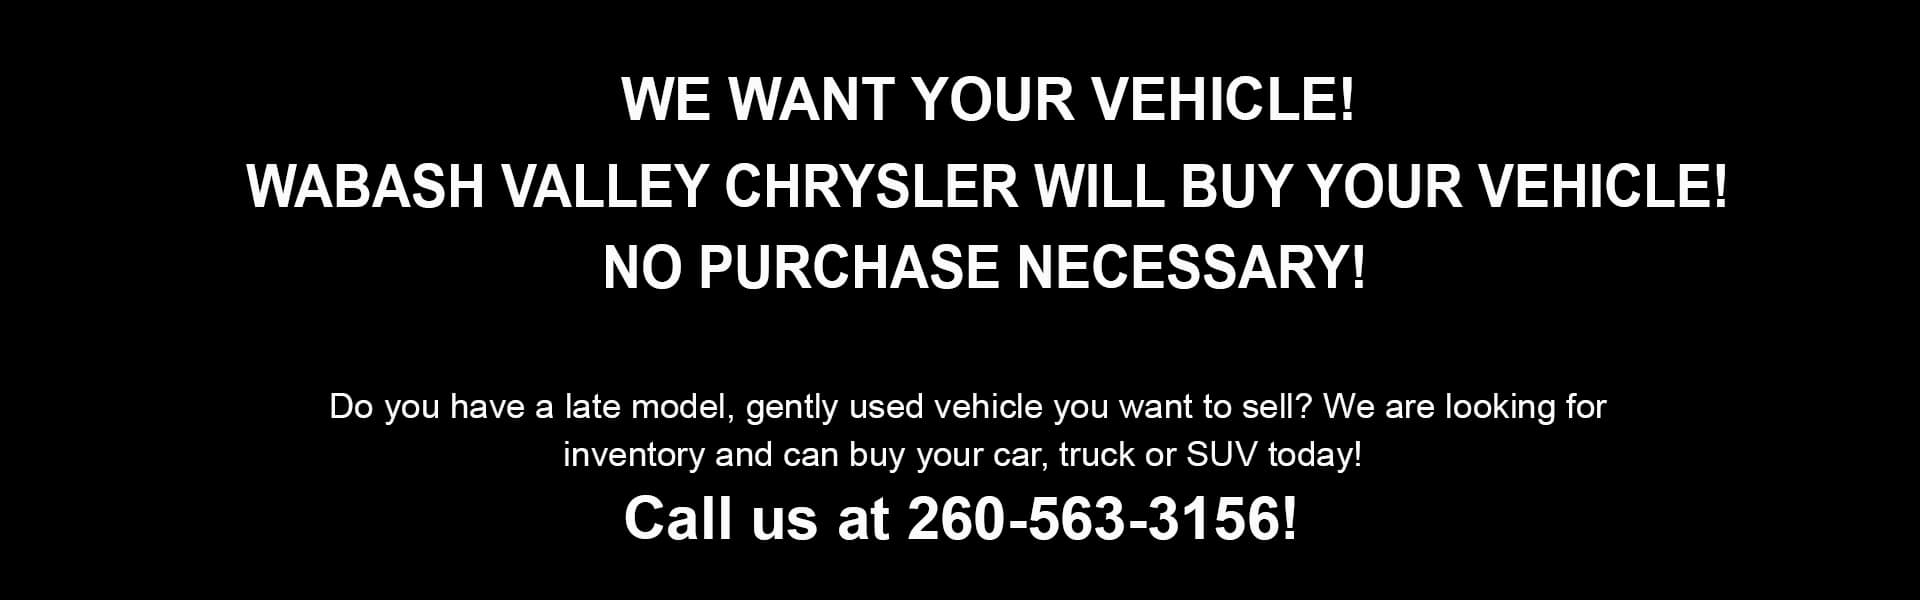 We-want-your-vehicle